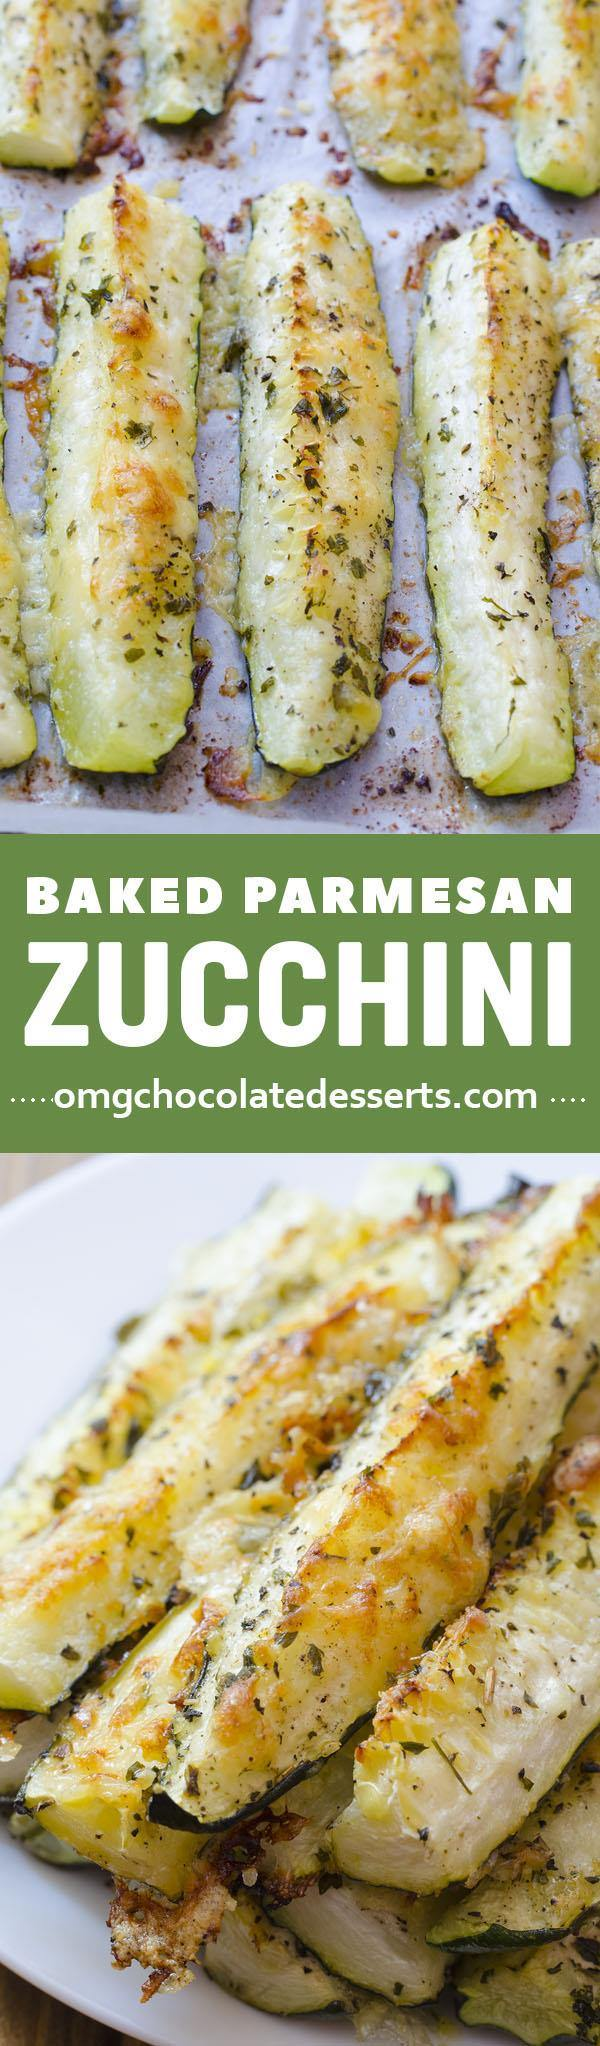 Baked parmesan zucchini omg chocolate desserts baked parmesan zucchini is quick and easy recipe for delicious and healthy weeknight dinner side dish forumfinder Image collections